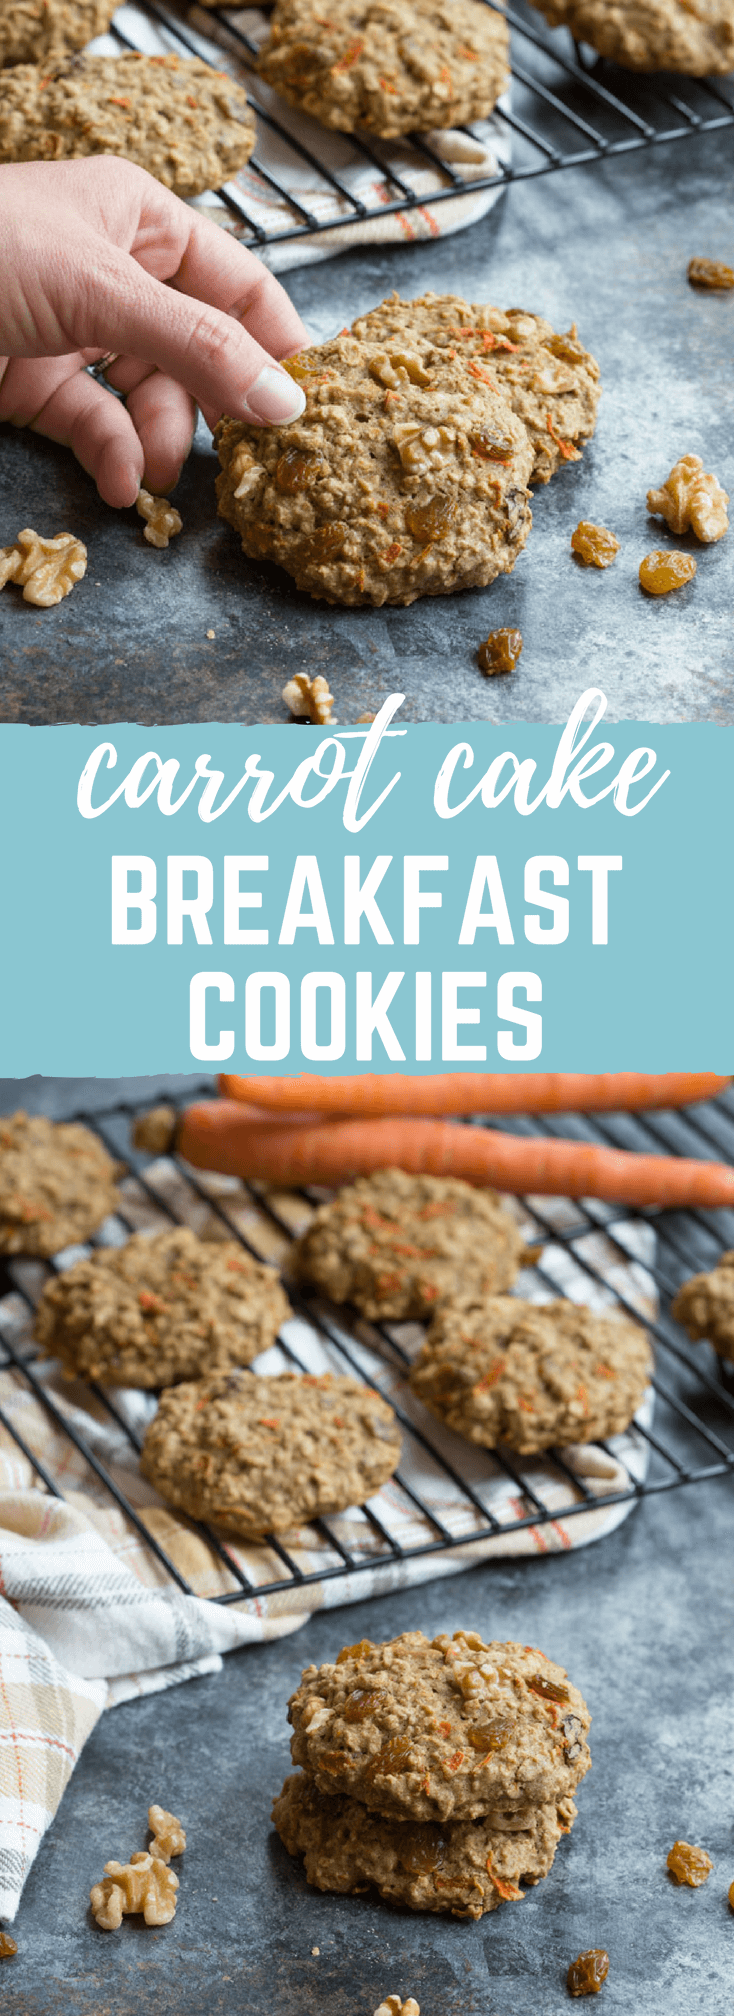 Carrot cookies - a useful treat for your baby